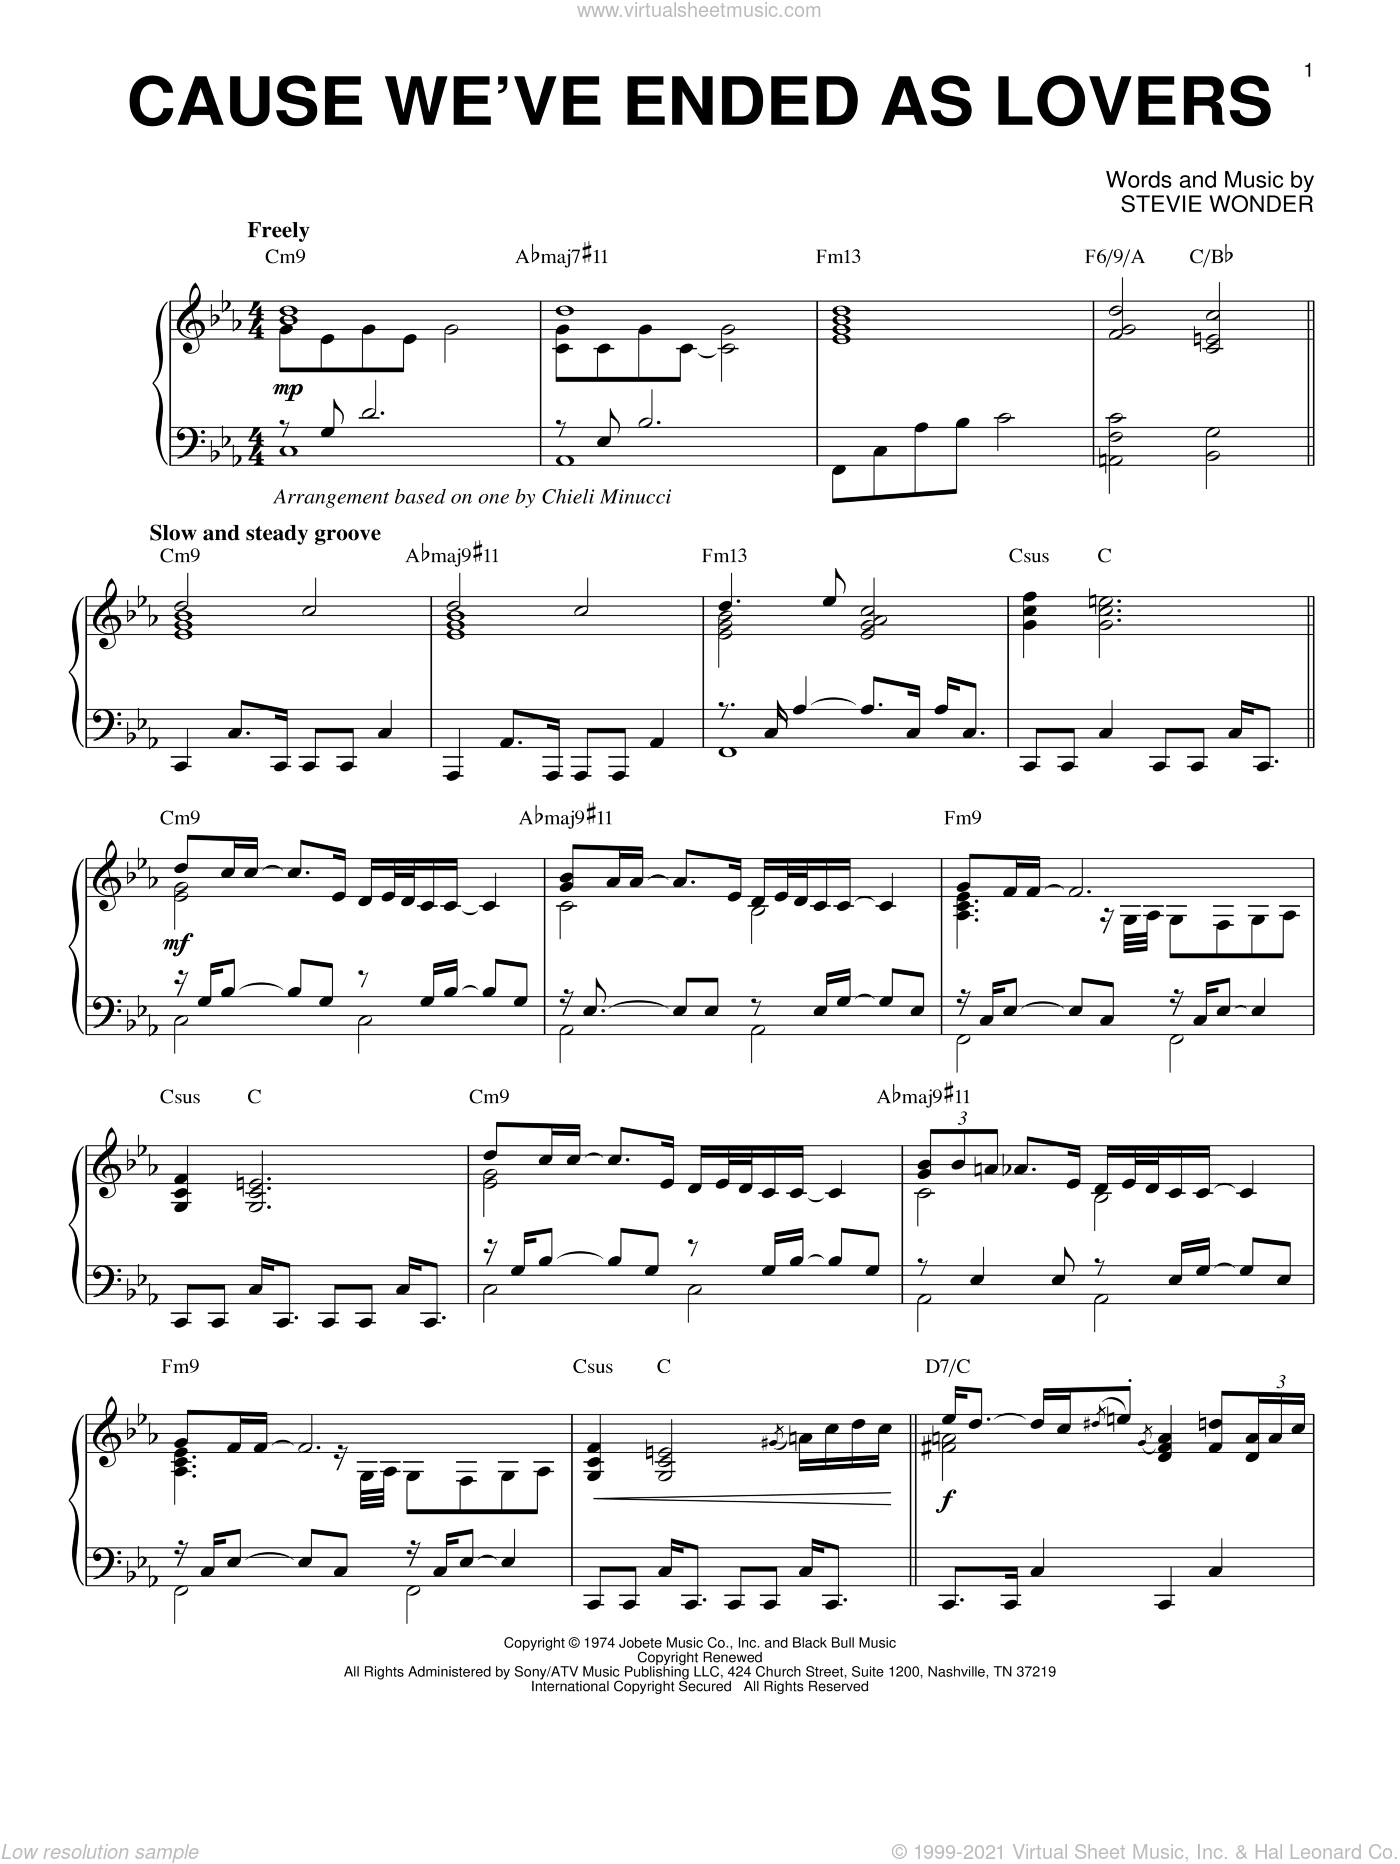 Cause We've Ended As Lovers sheet music for piano solo by Jeff Beck and Stevie Wonder, intermediate skill level